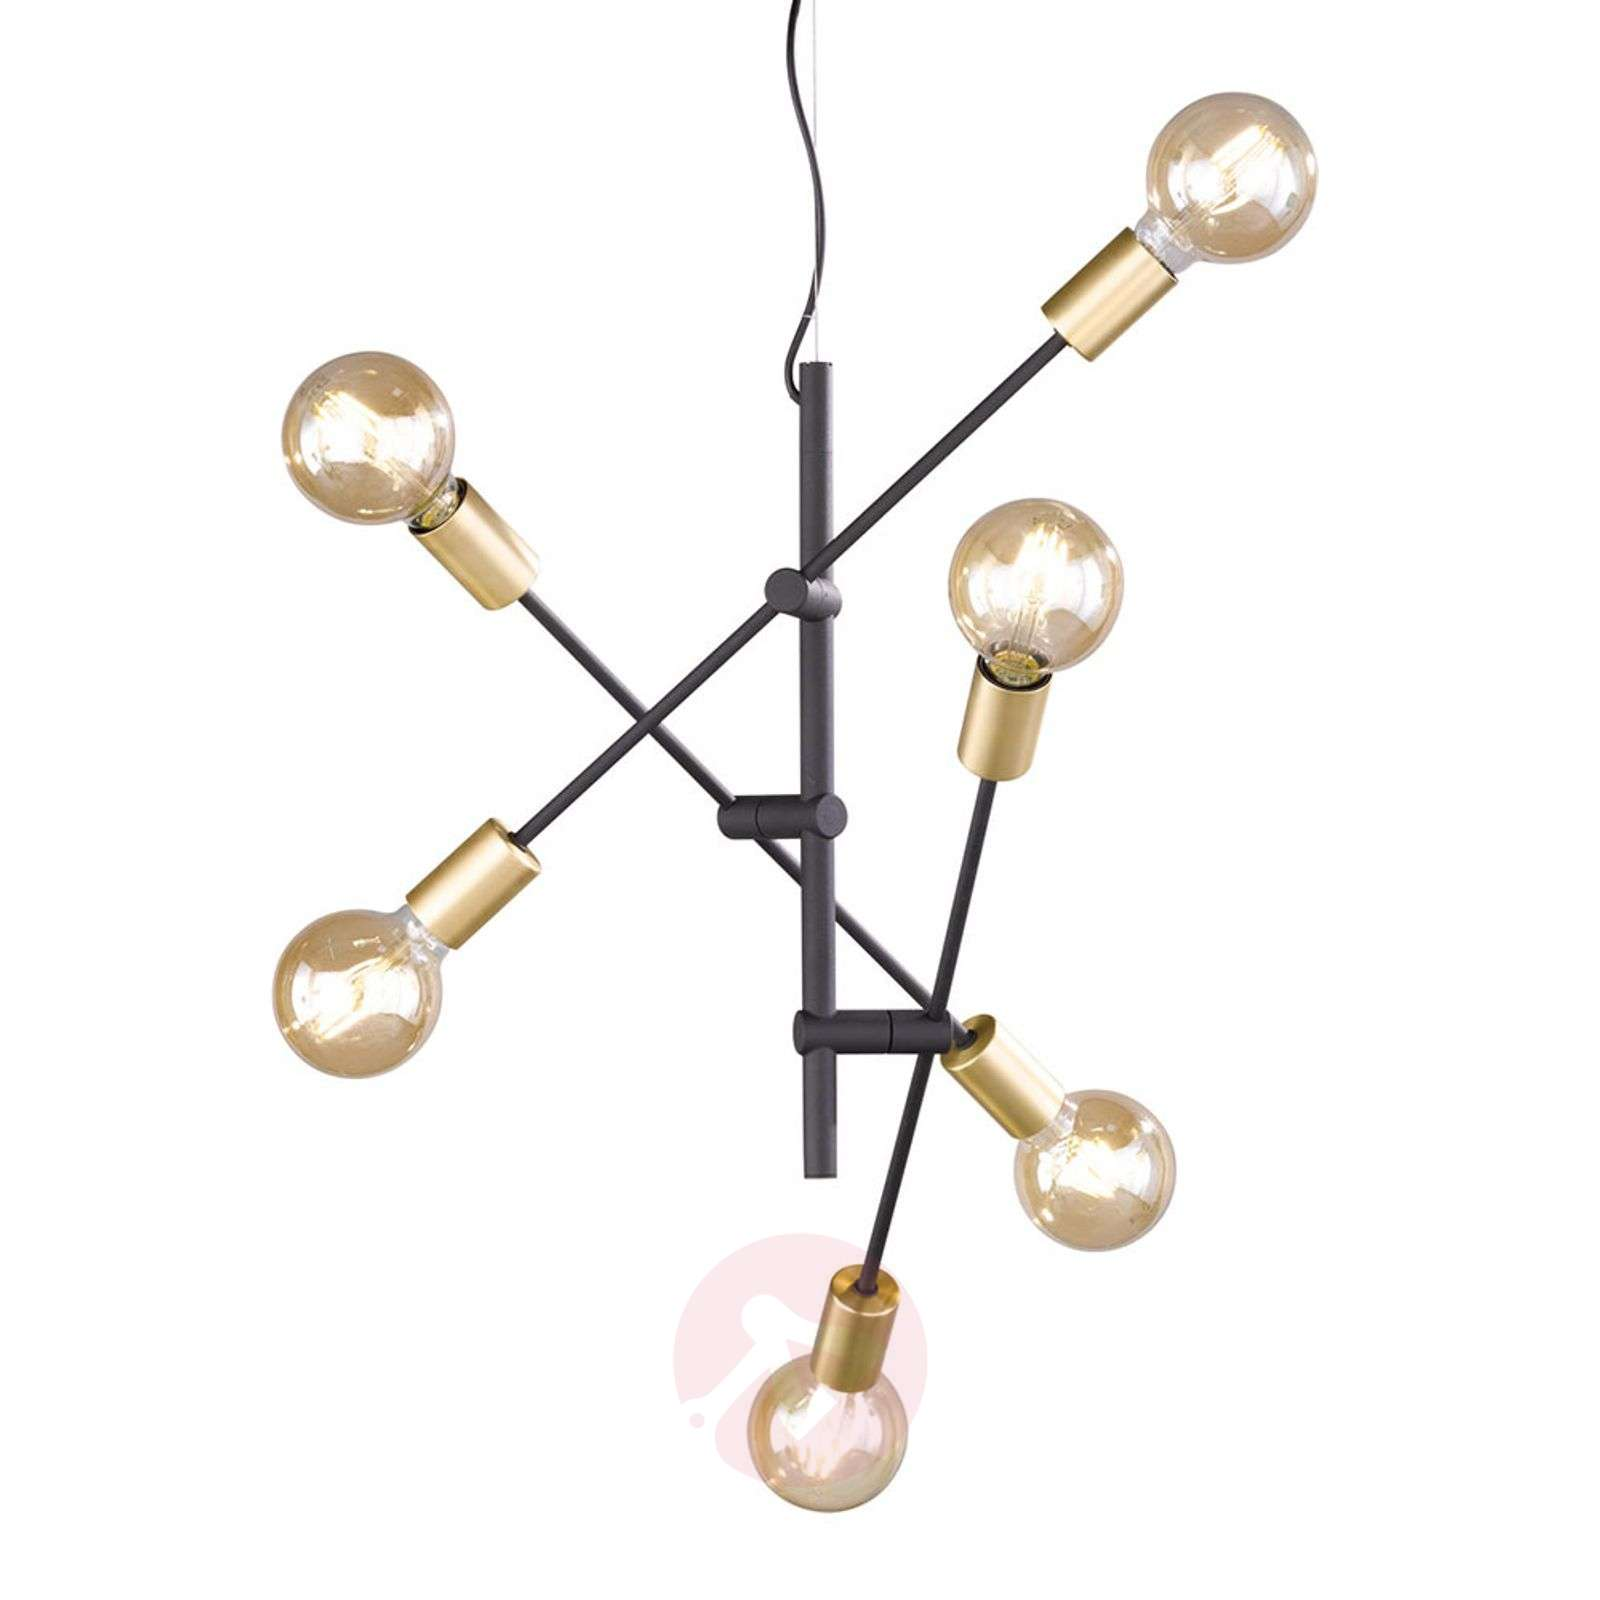 Suspension minimaliste Cross-9005540-01